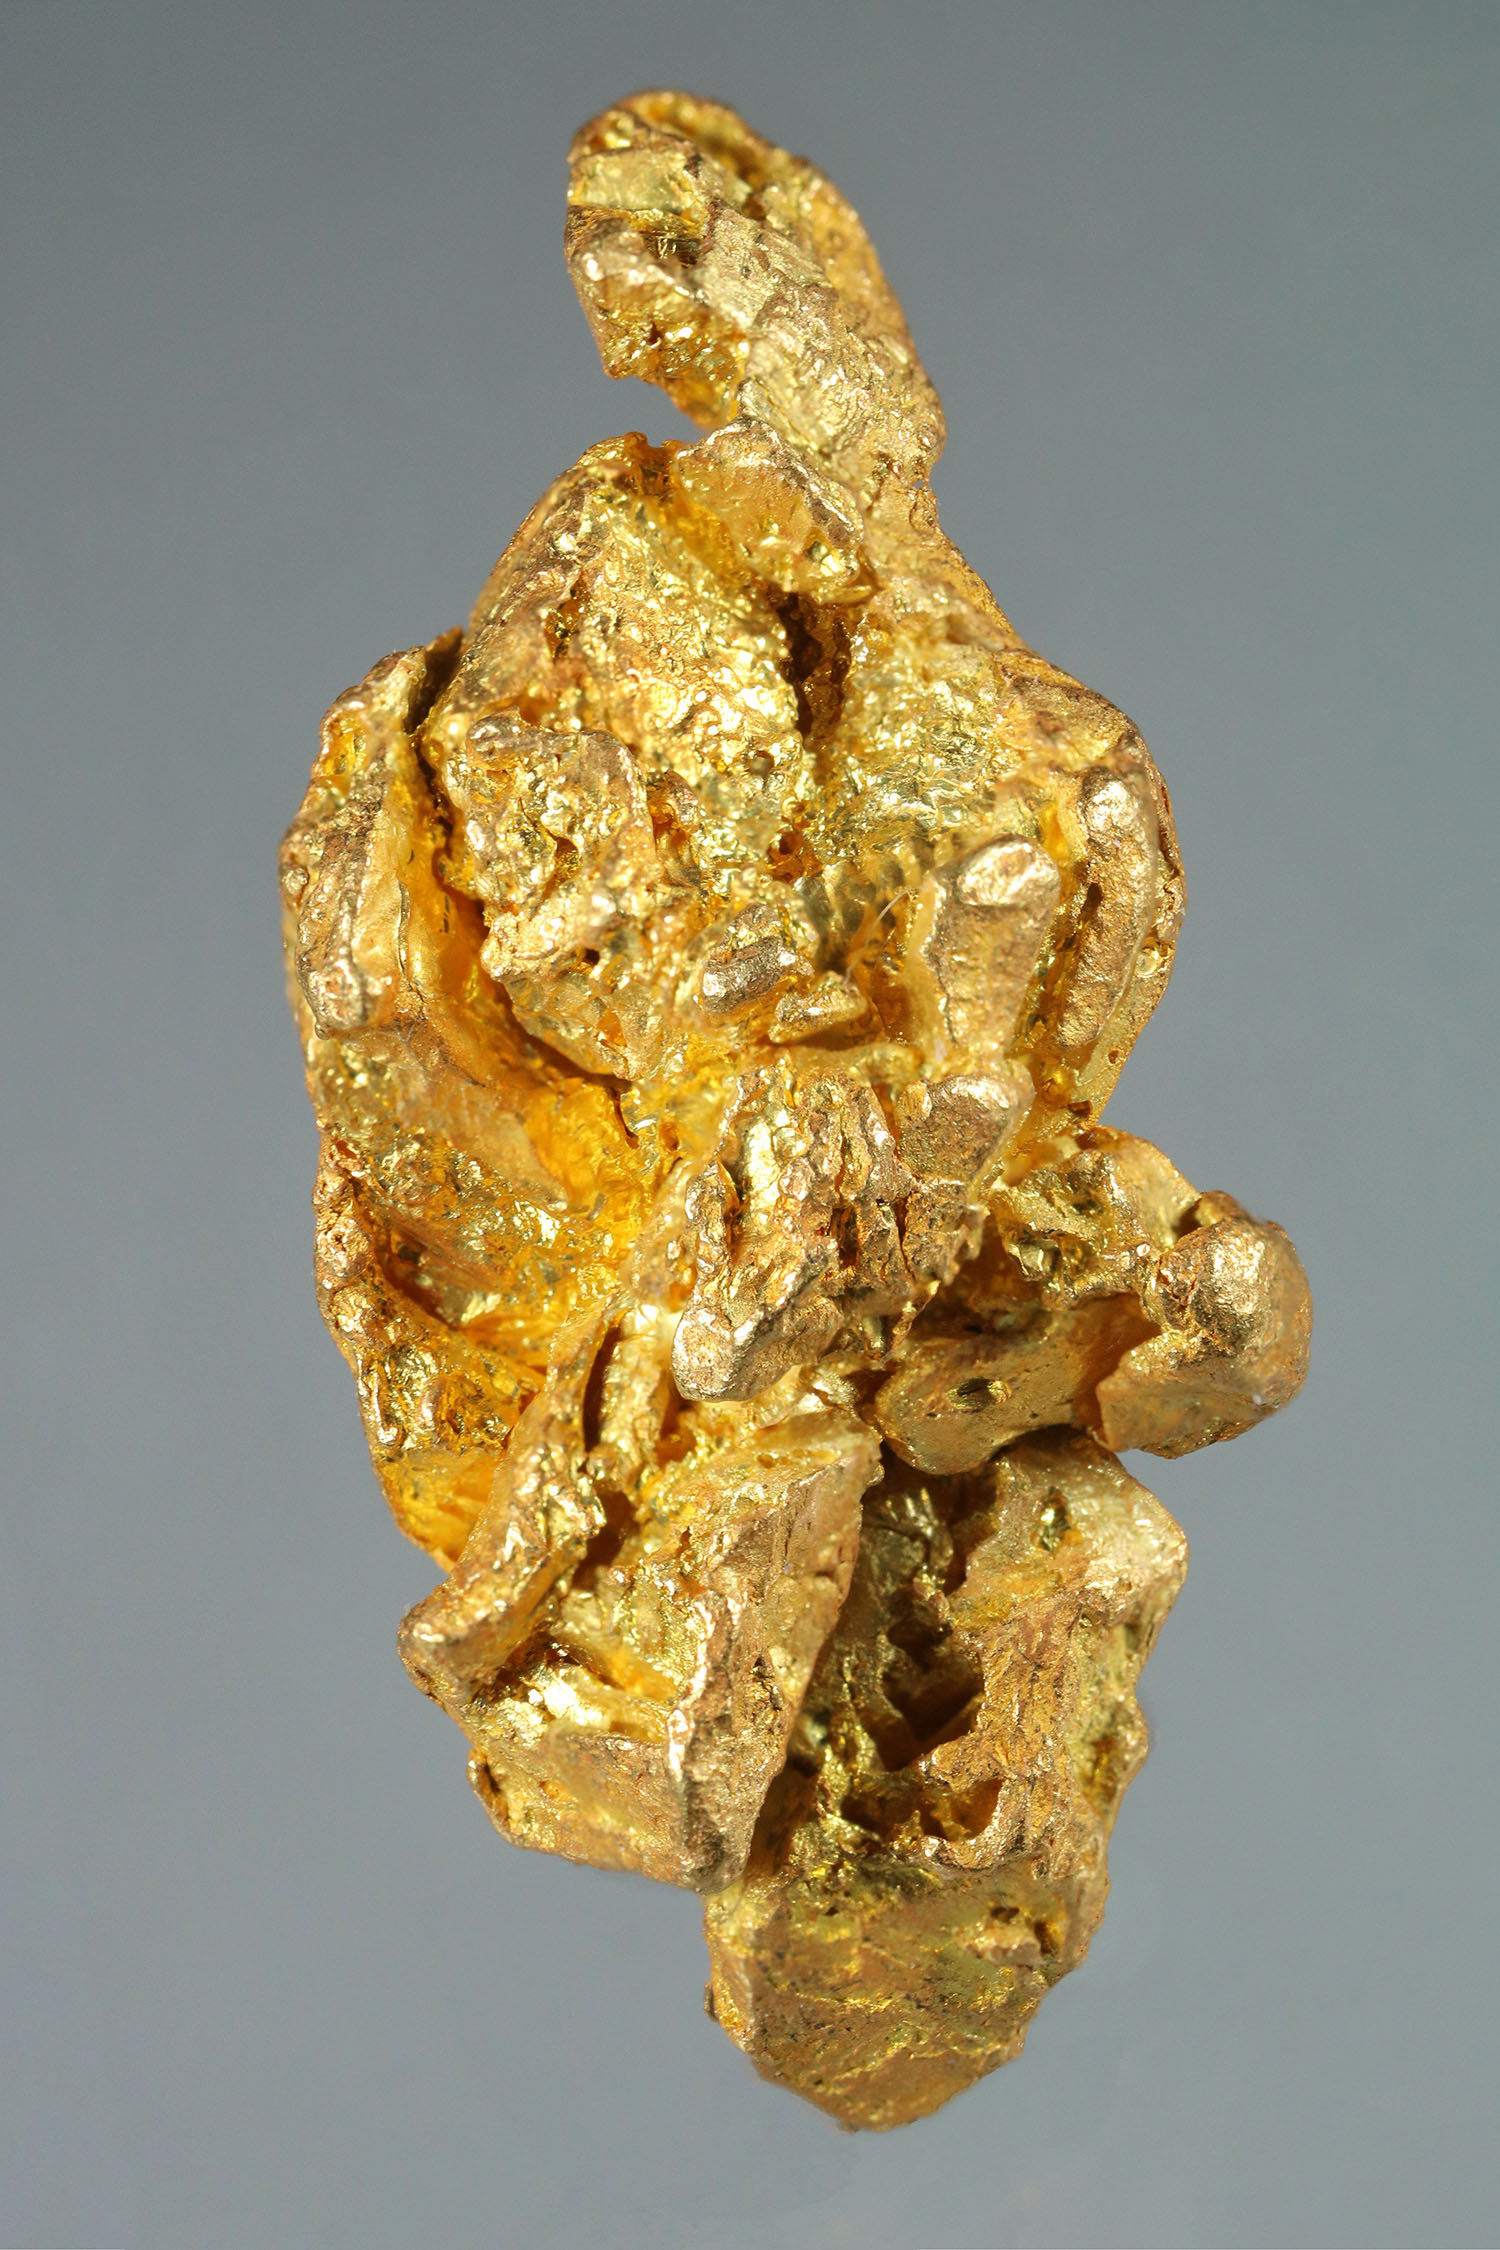 Elongated and Faceted Gold Crystal from the Yukon